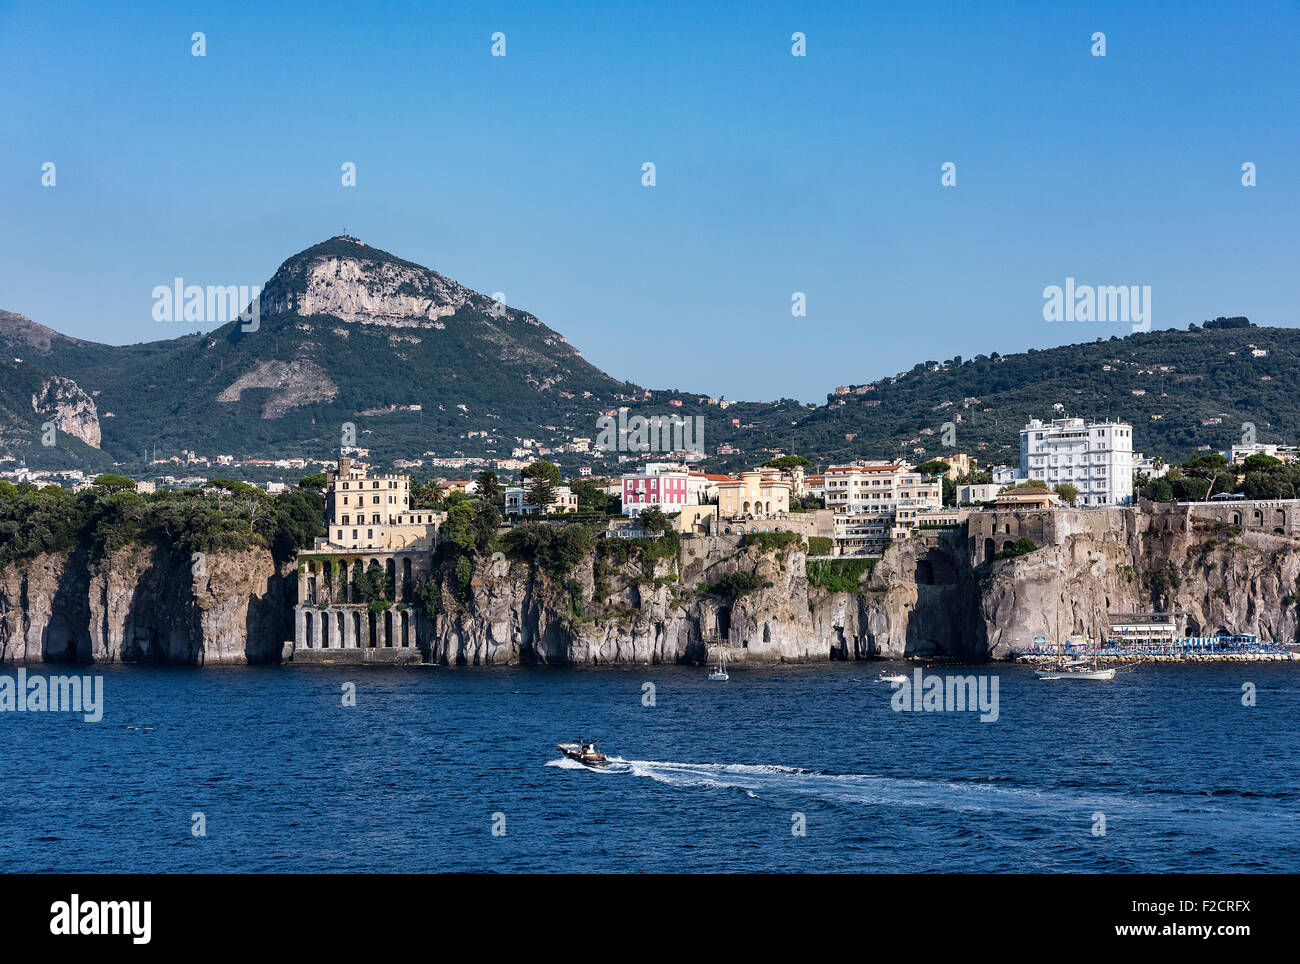 Falaises et le bord de l'architecture, Sorrento, Italie Photo Stock